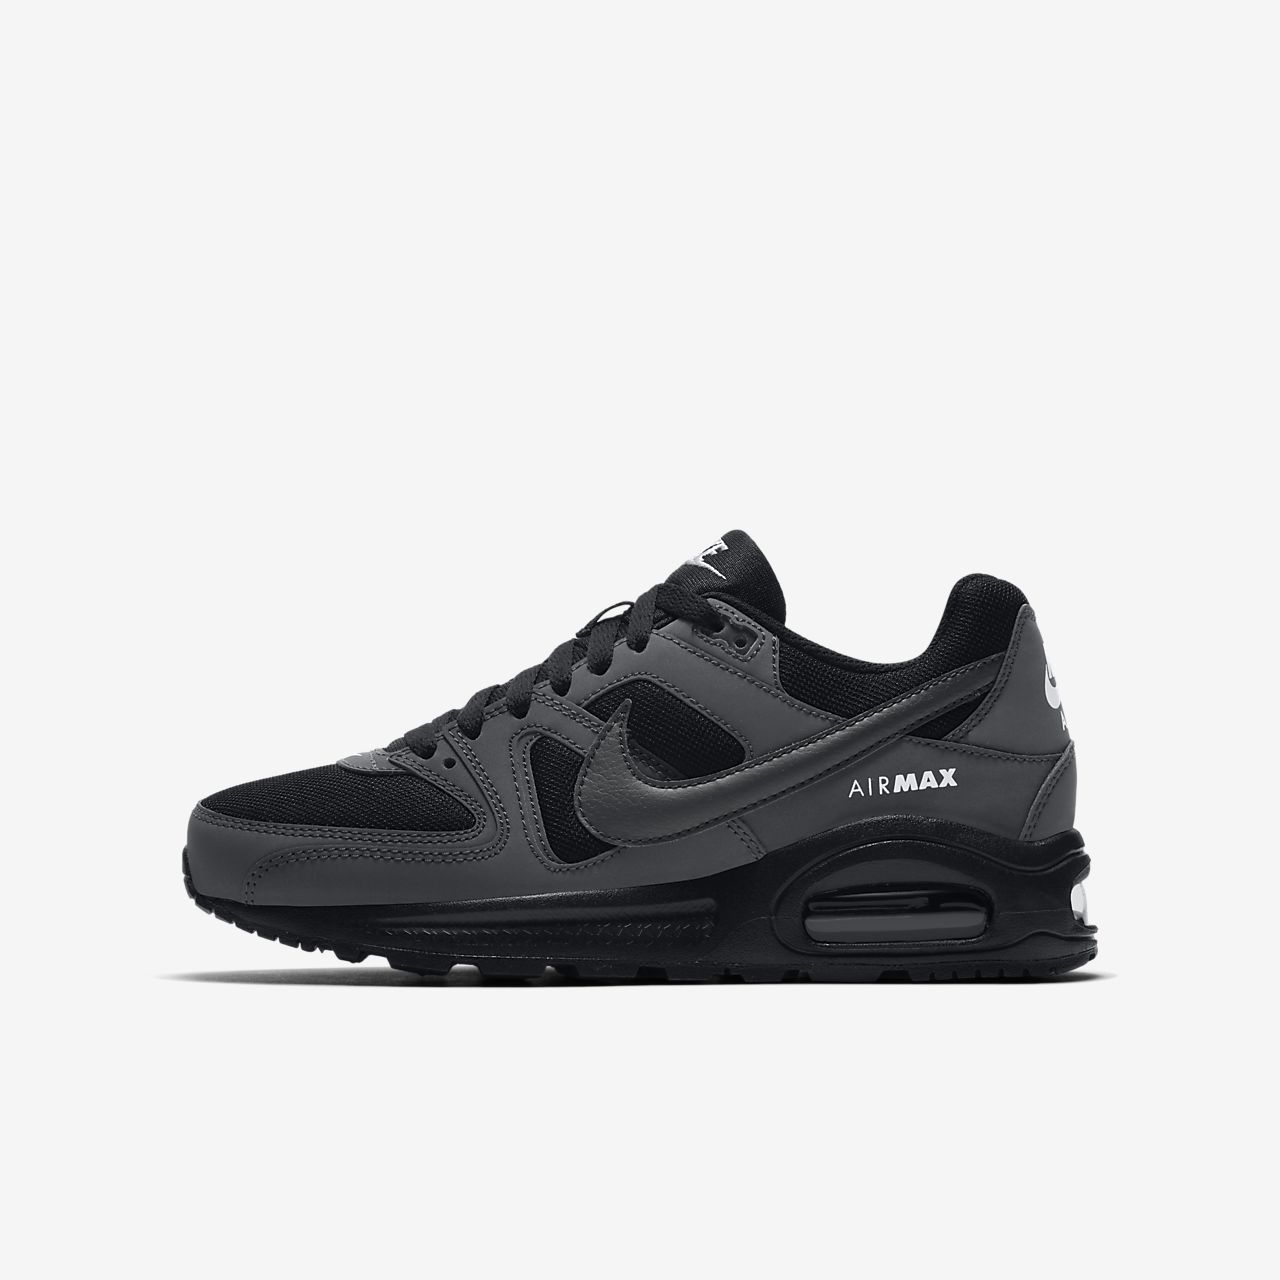 timeless design 2b0bd 6772f ... Nike Air Max Command Flex-sko for store barn